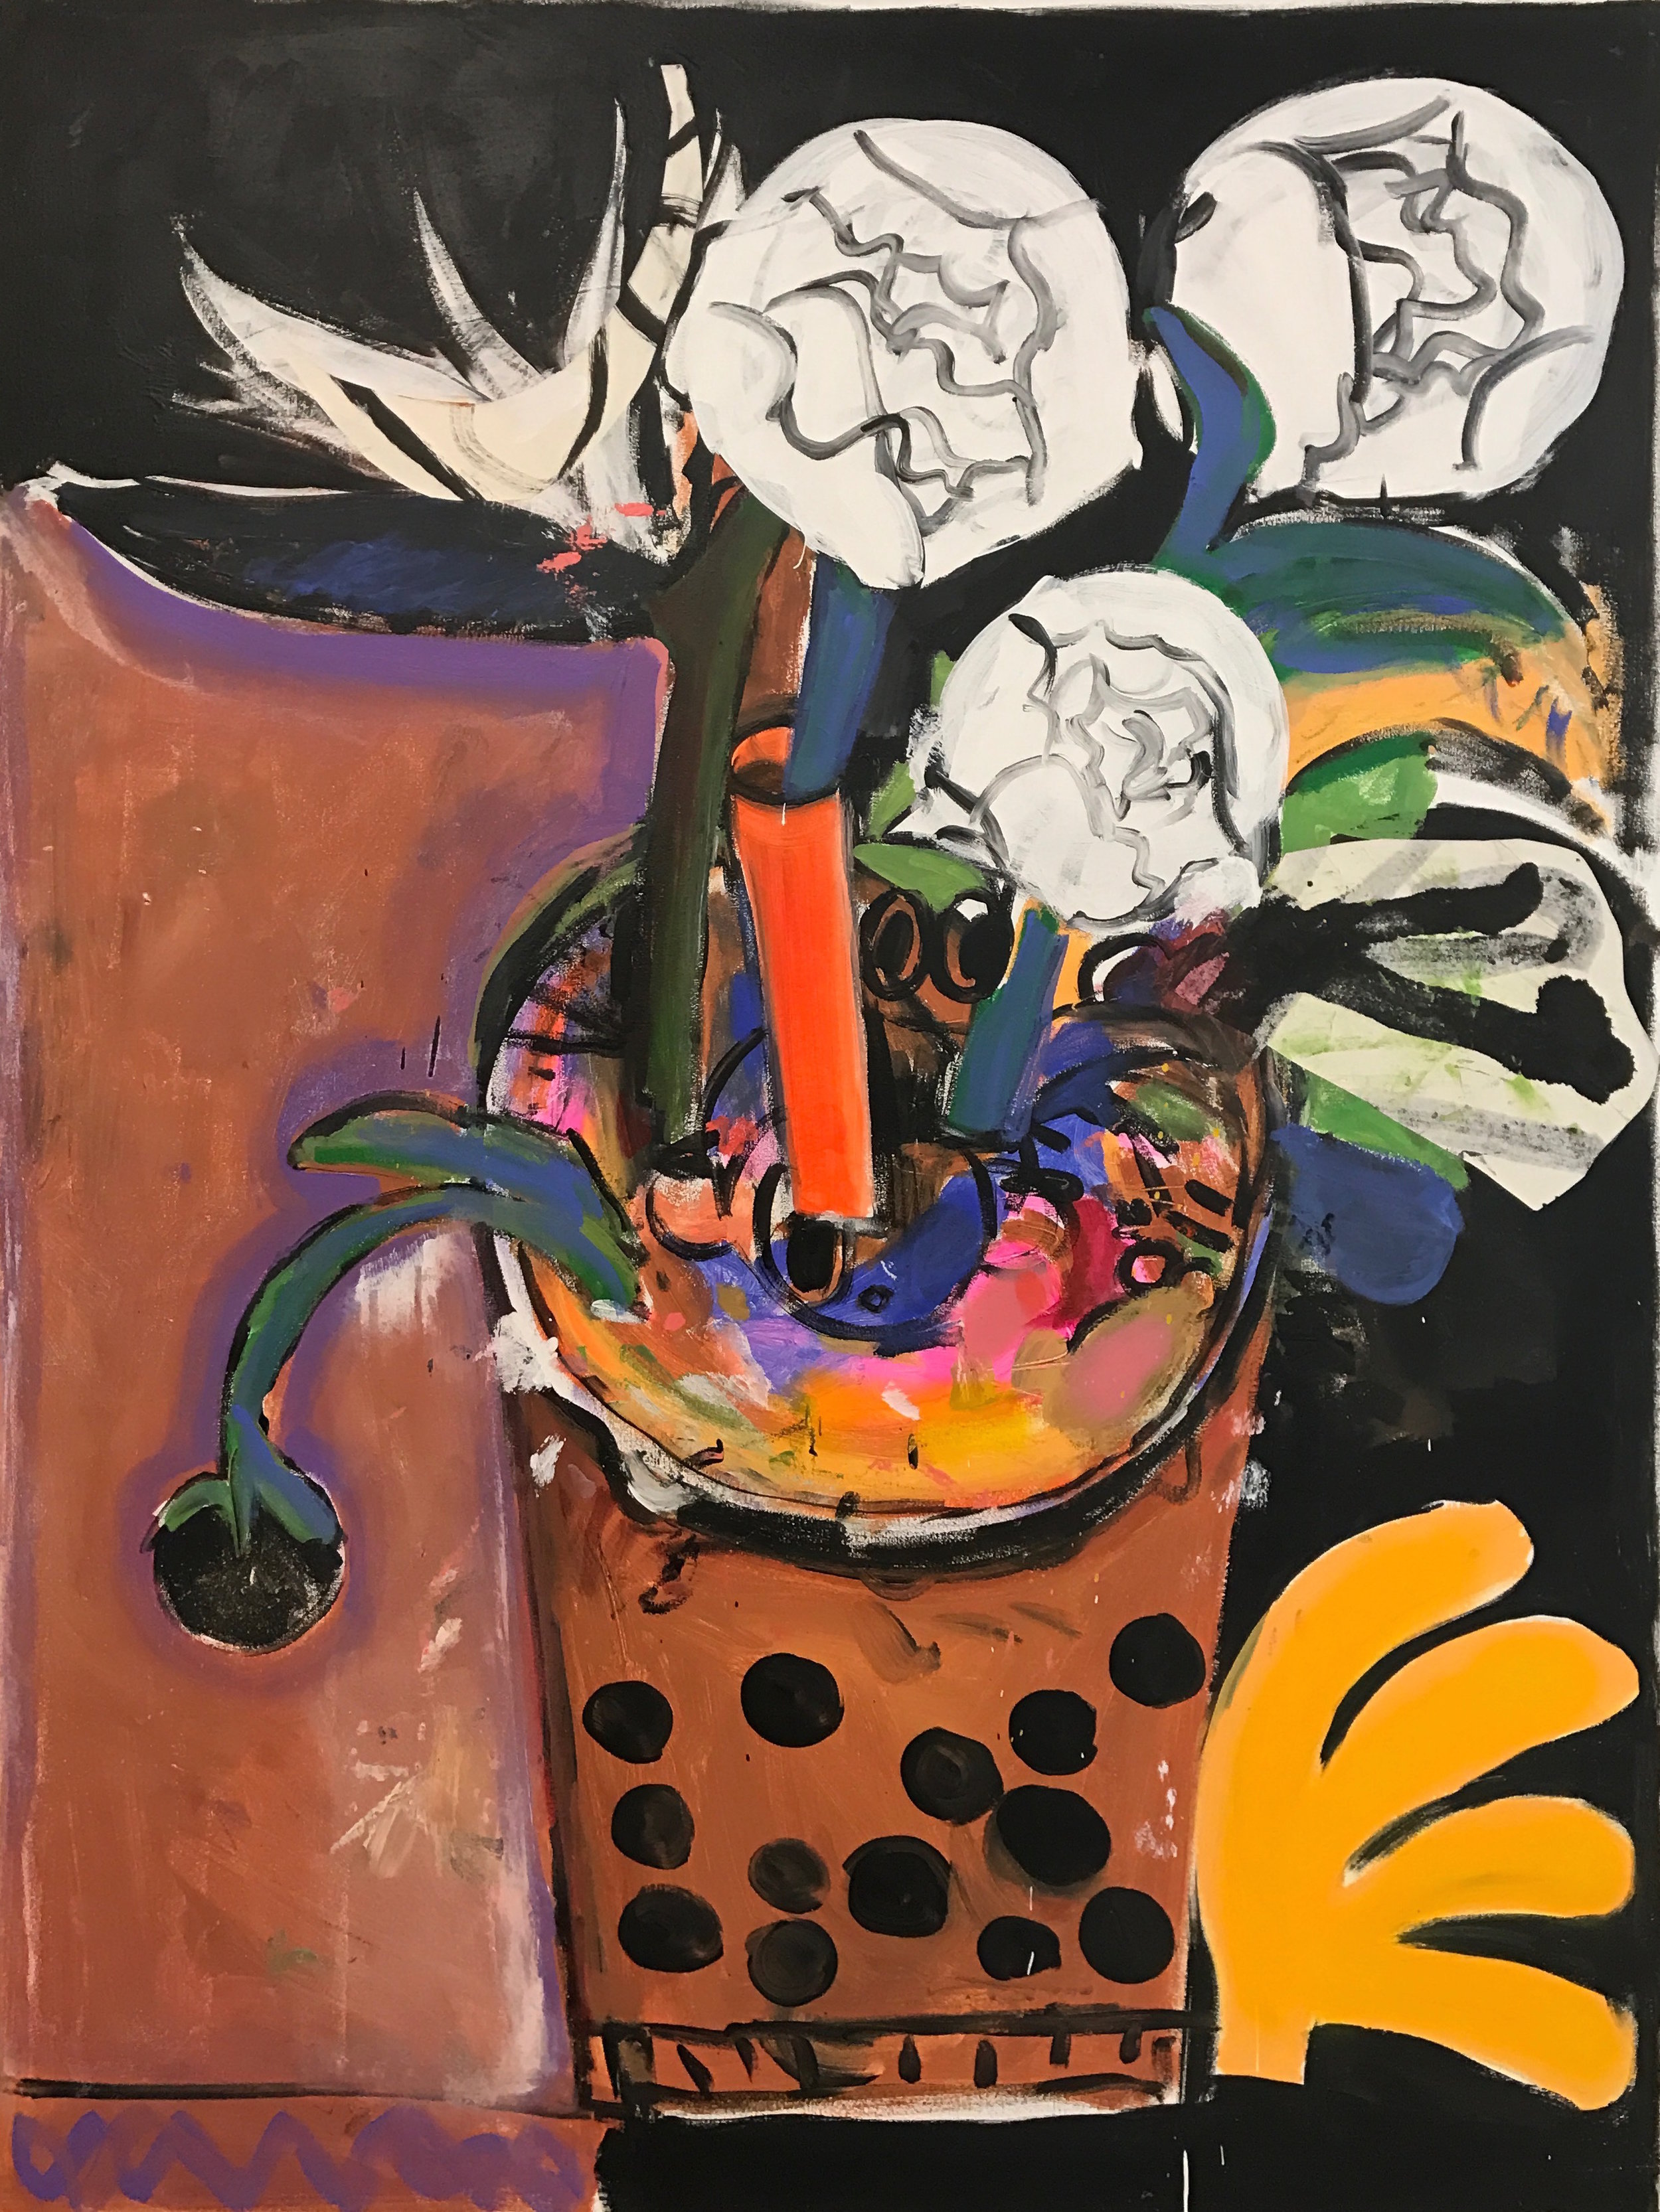 Tessar Lo / A Matter Of Taste / 2017 / Mixed media on canvas / 48 x 36 inches